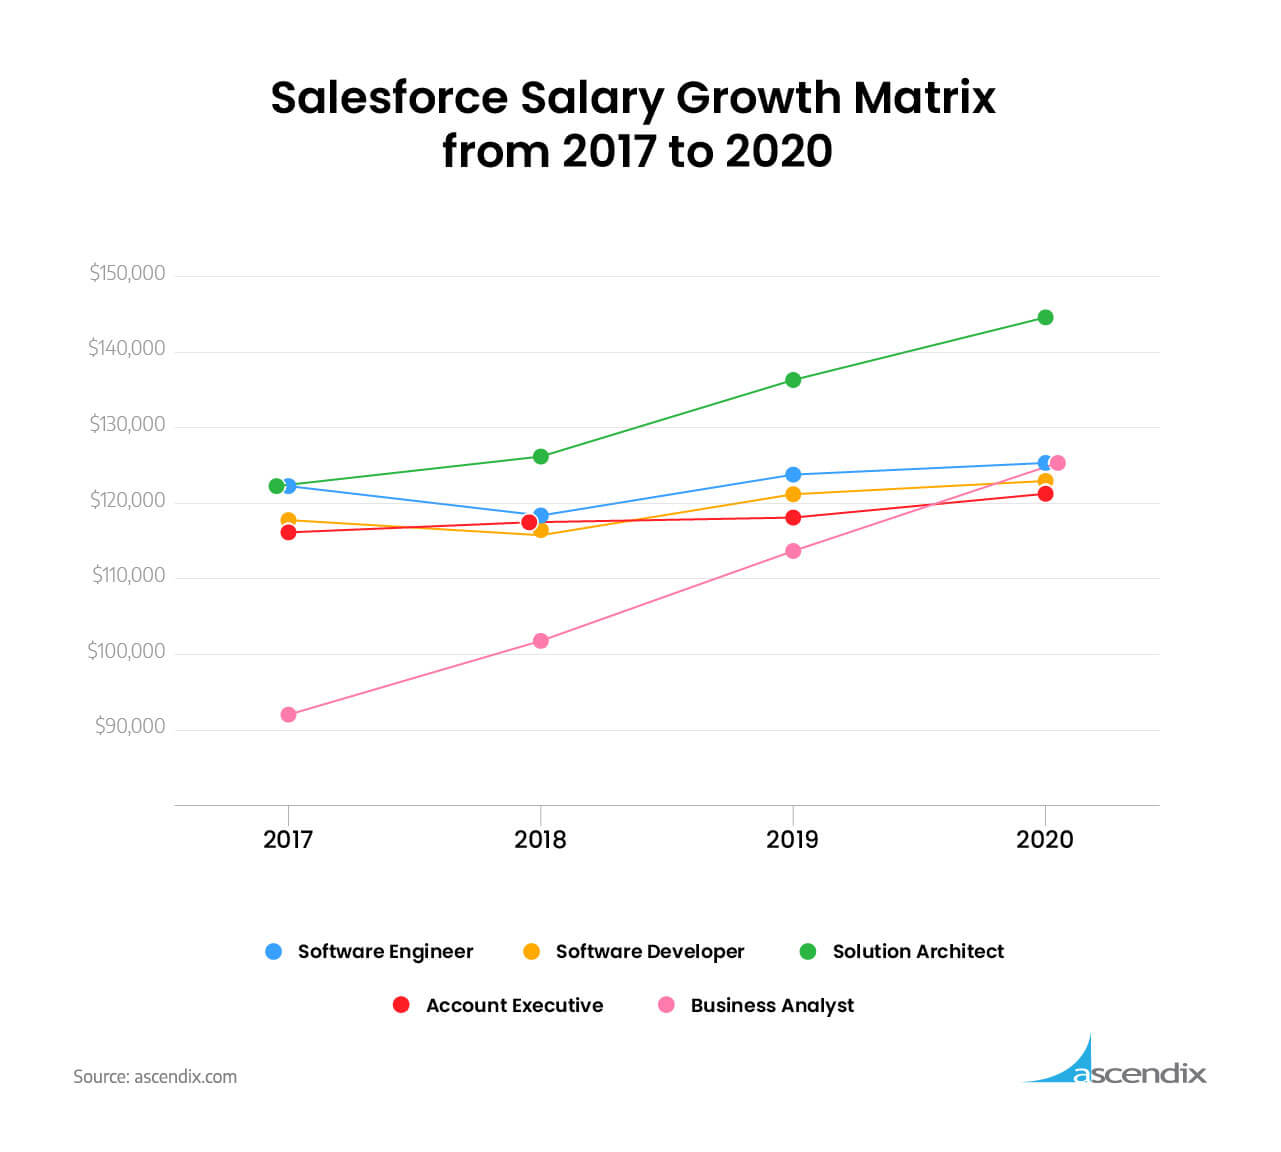 Salesforce Salary Growth Matrix from 2017 to 2020